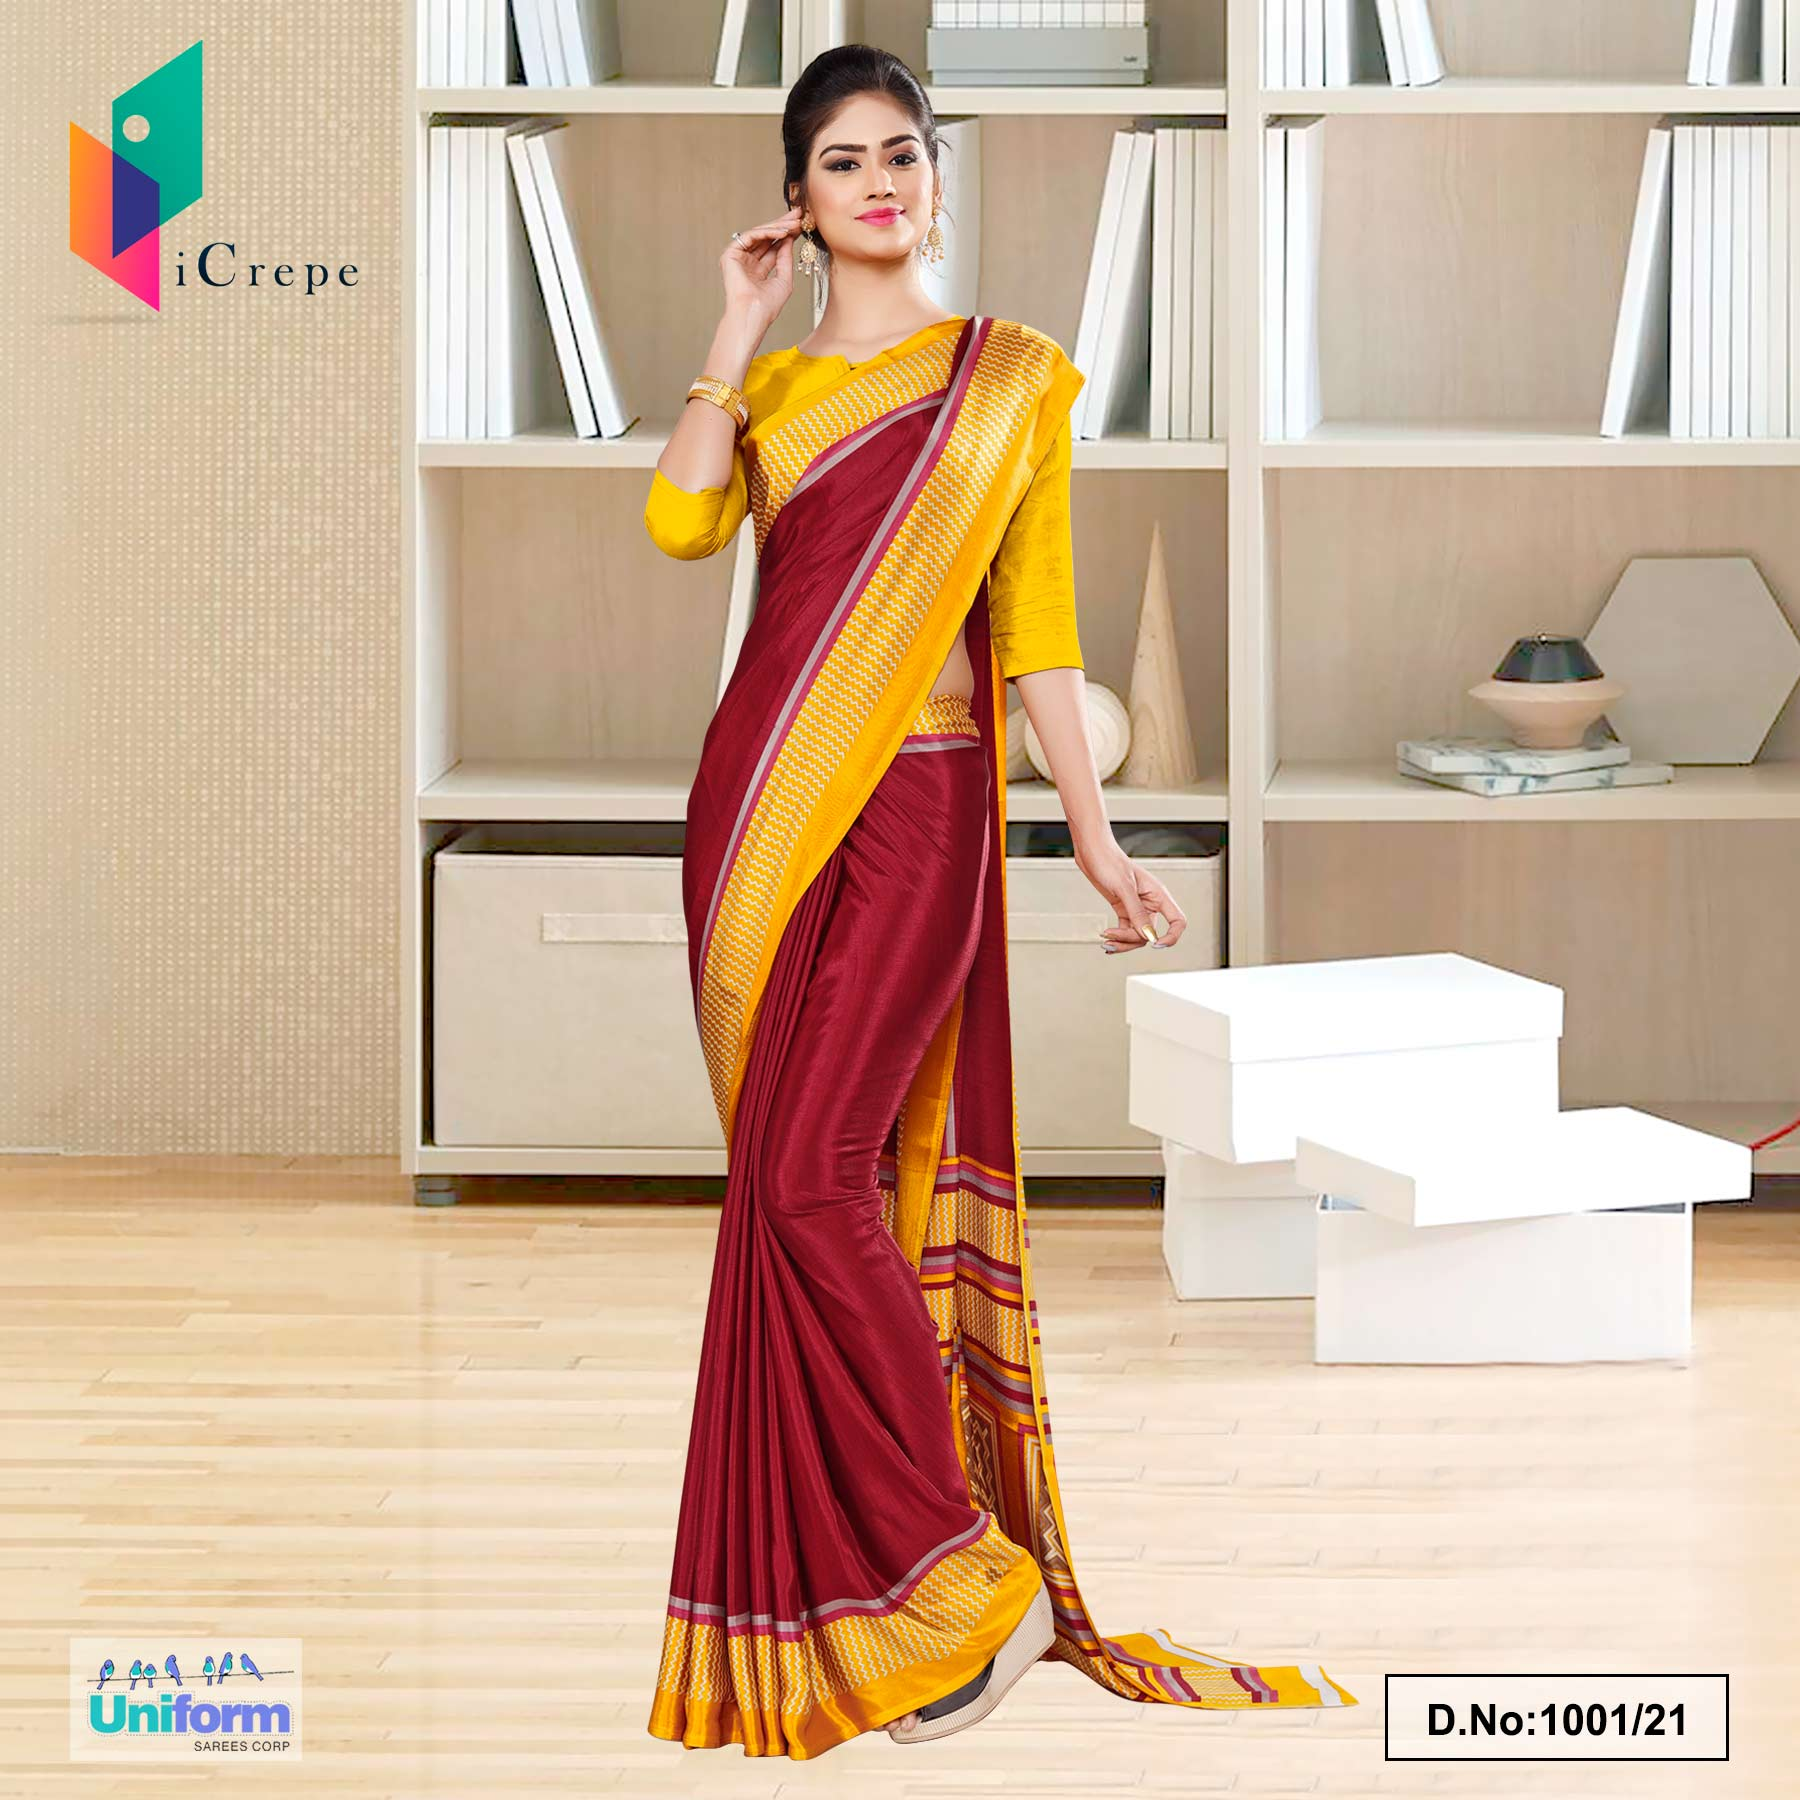 Marron Yellow Italian Silk Crepe Saree for School Uniform Sarees